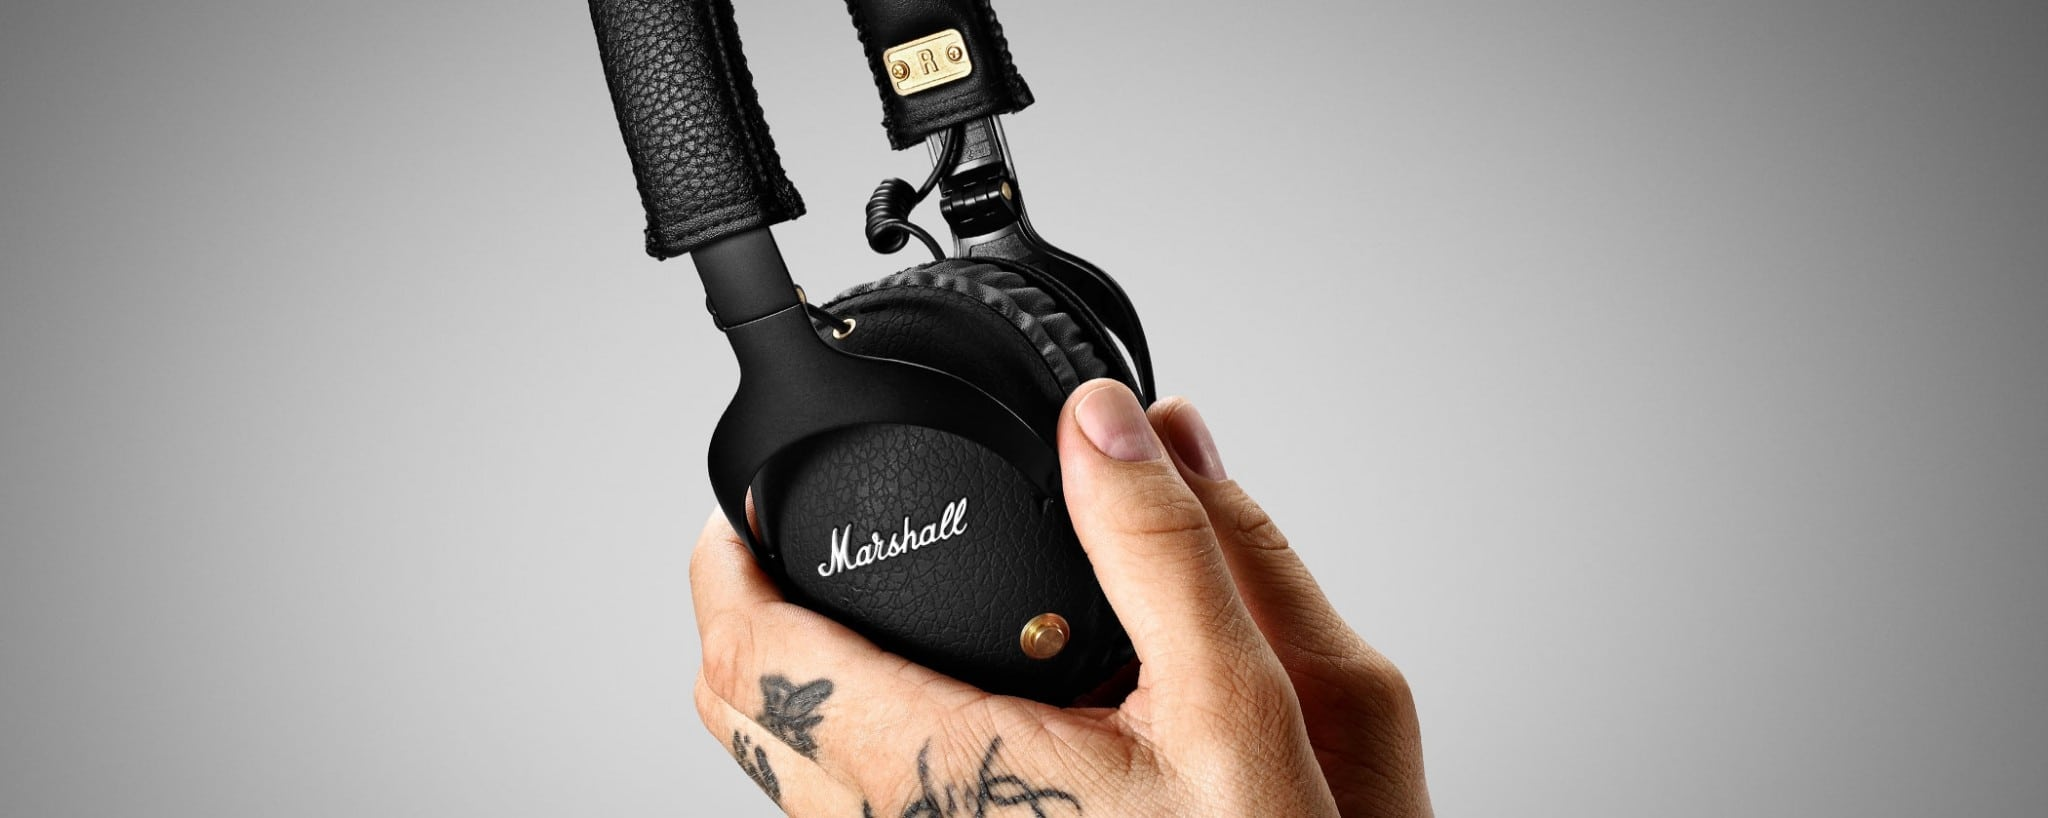 marshall_headphones_slide__monitor_bluetooth__03_3800